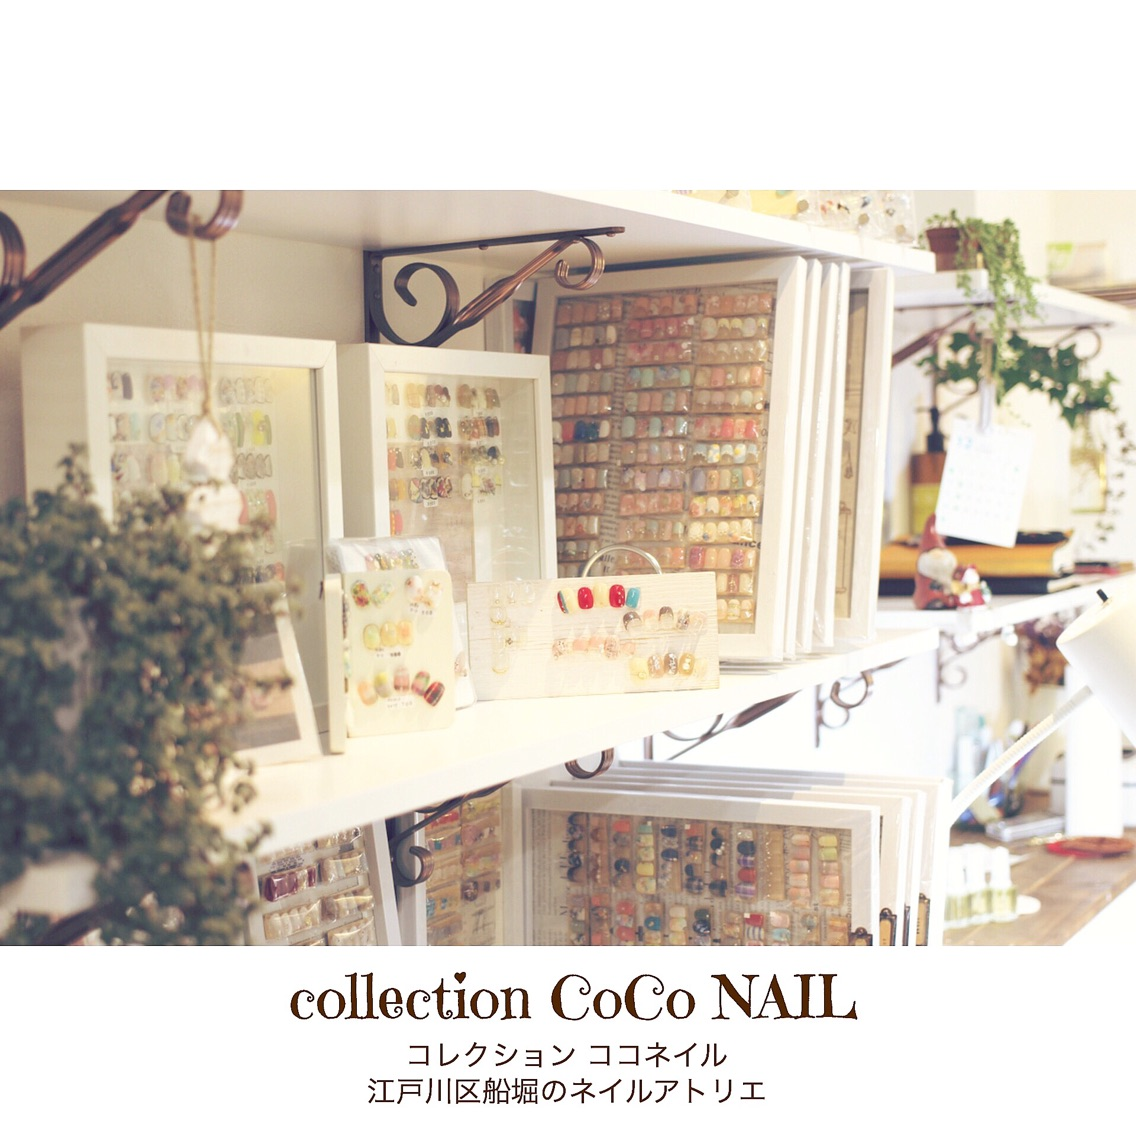 collection CoCo NAIL